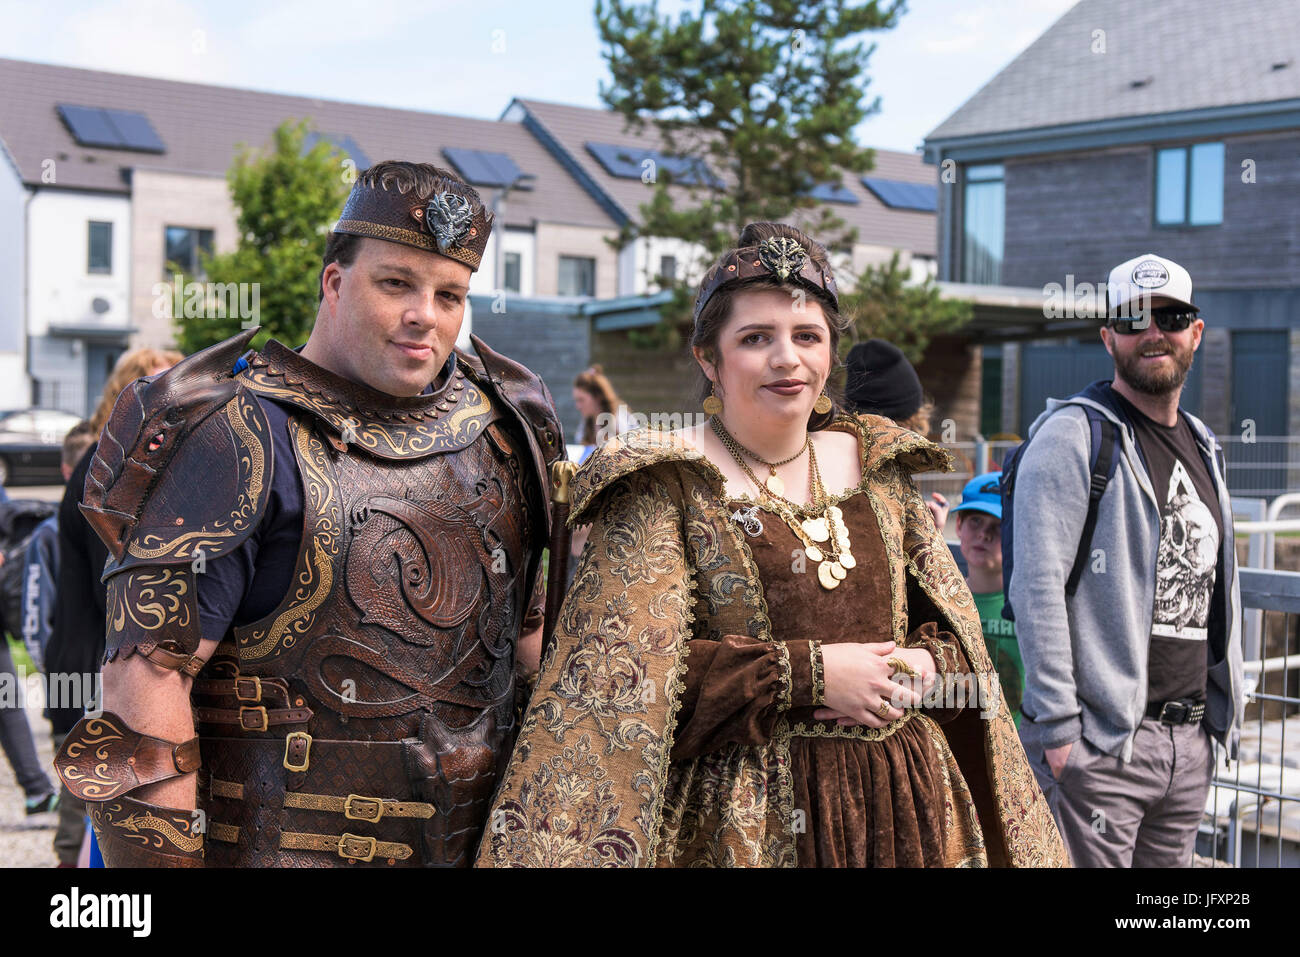 Comic book fans, film fans and cosplay artists gather at The Heartlands in Cornwall for Geekfest 3.0 - a celebration - Stock Image